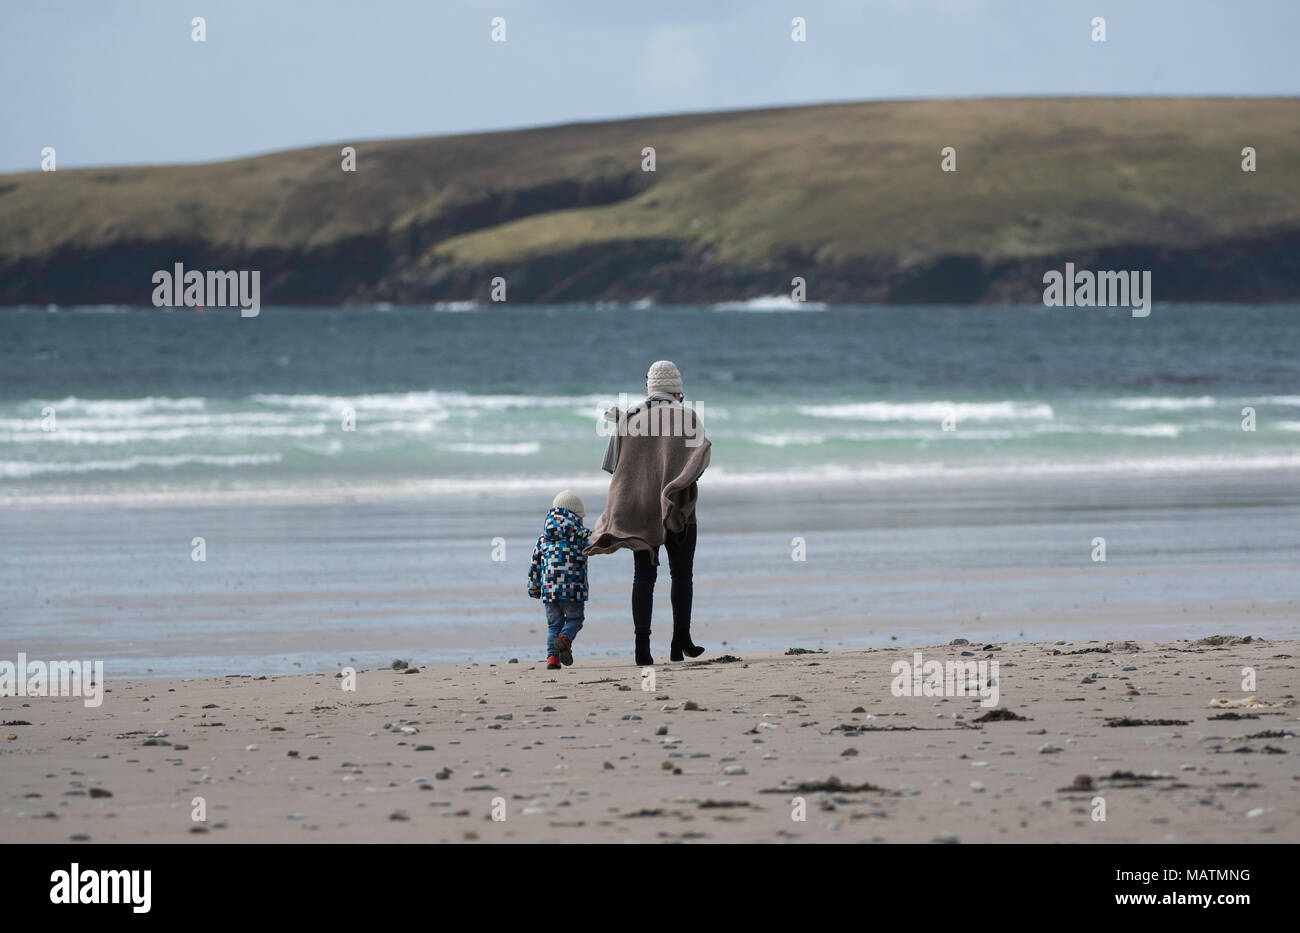 Mother and young son strolling, walking on beach during windy weather, Warm Clothes and Woollen White Hats, Cliffs and Green Island in the background - Stock Image